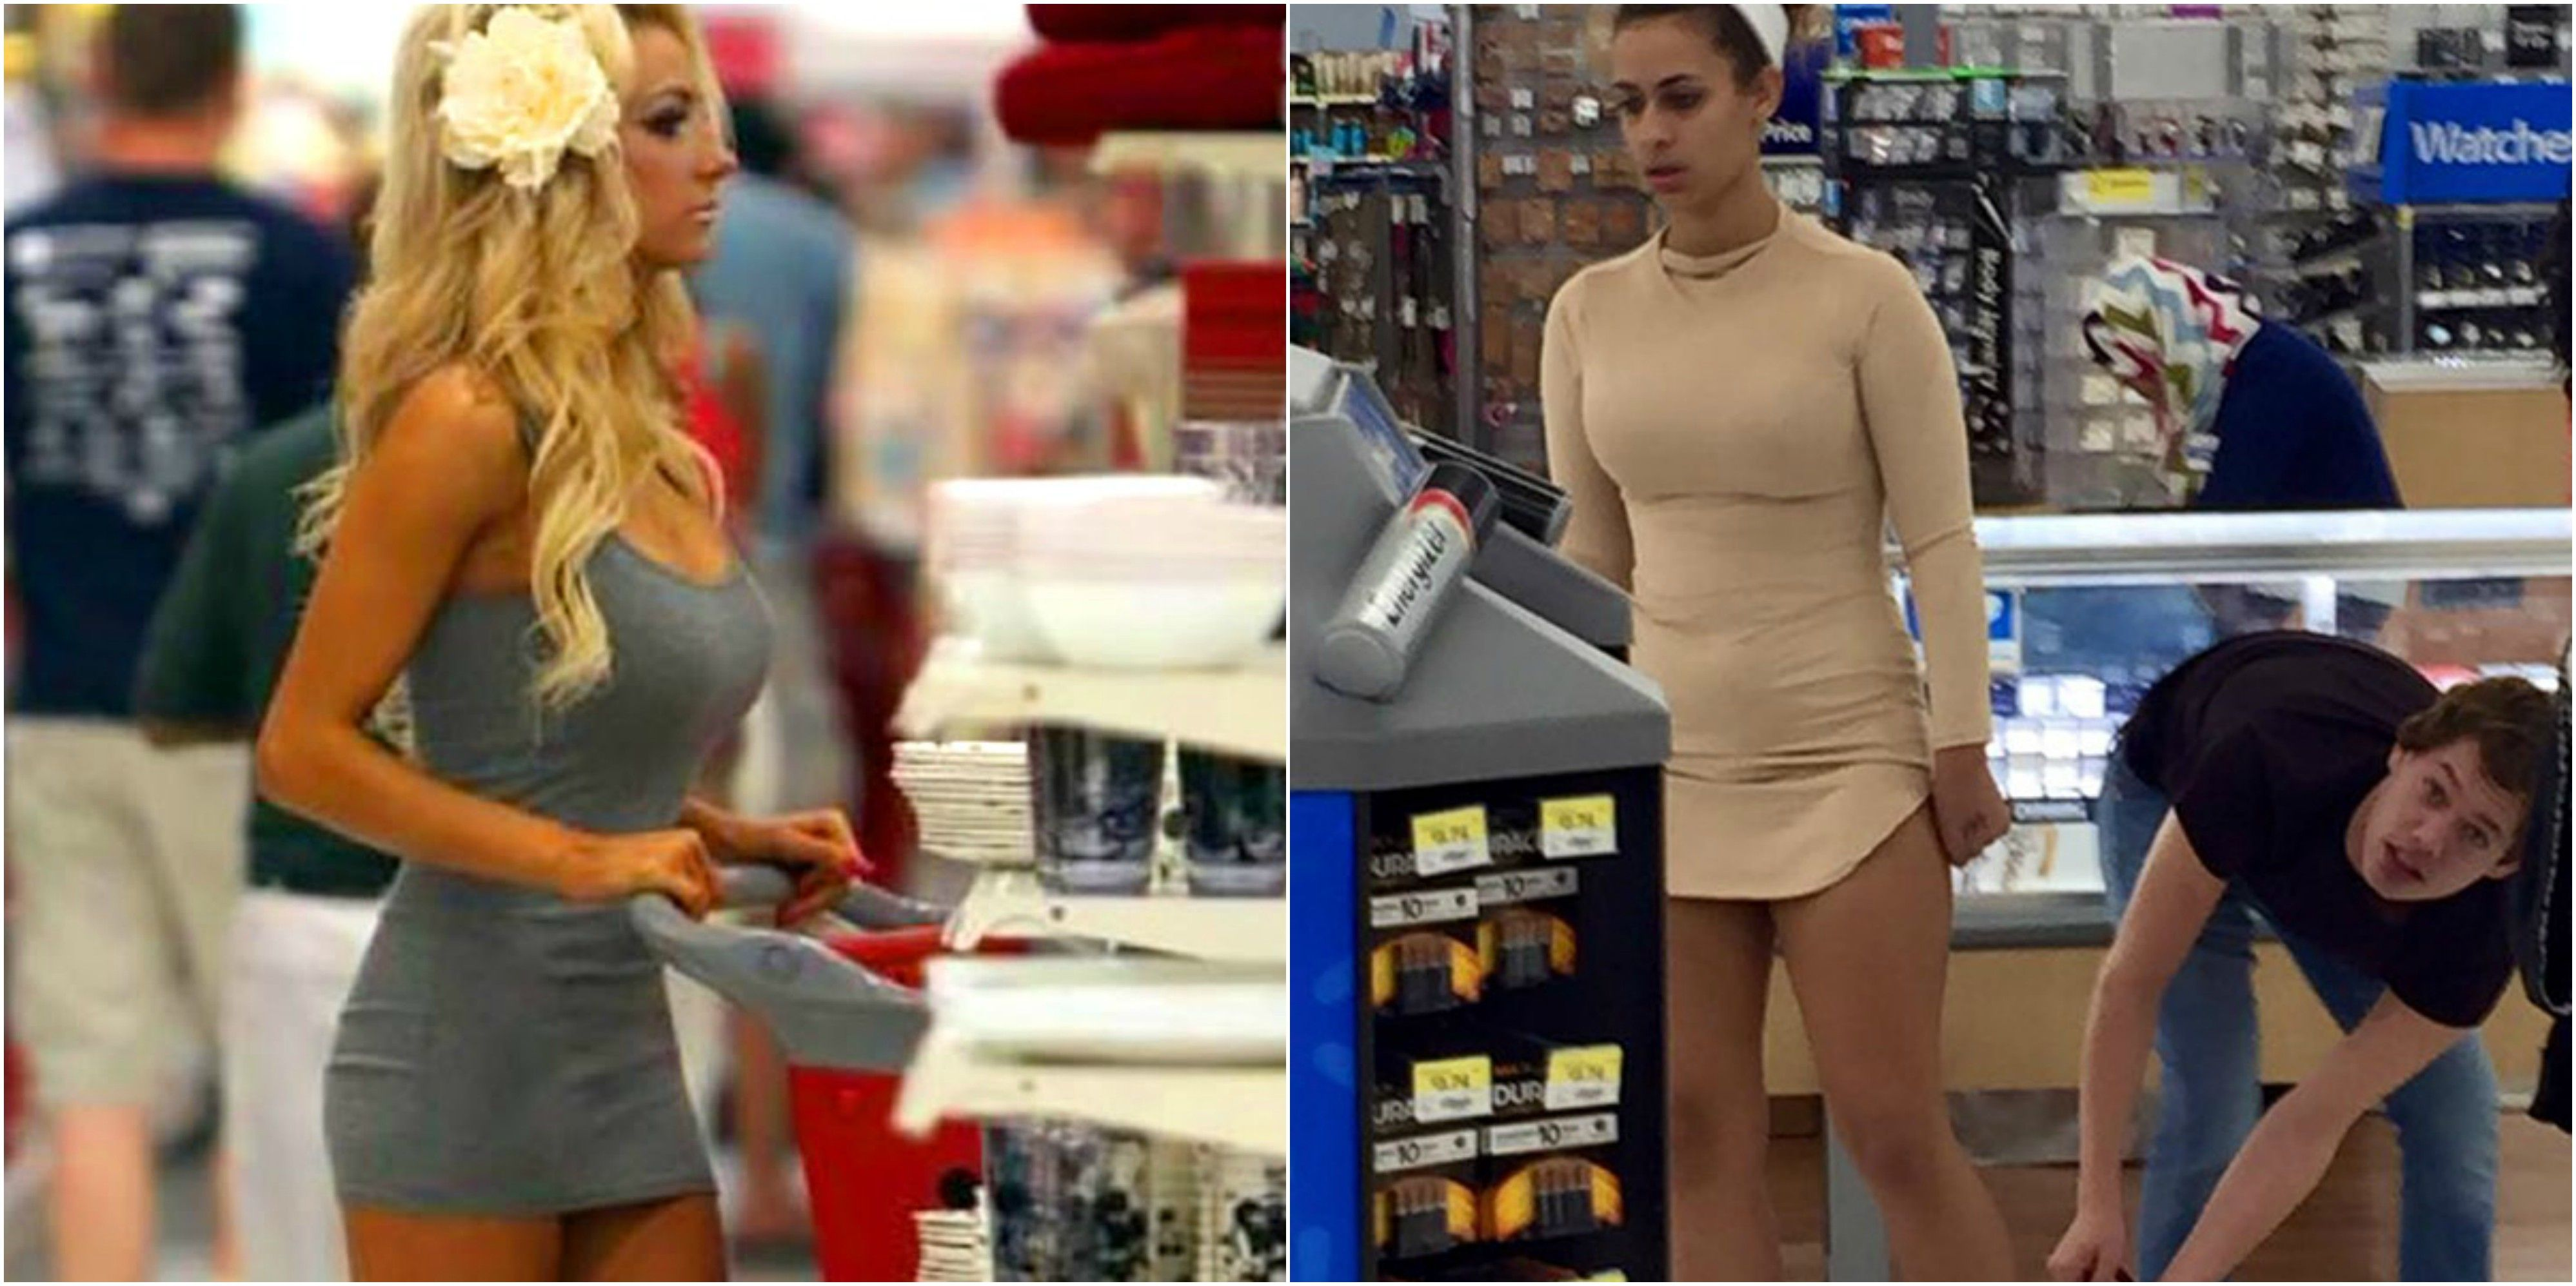 hot-babes-of-walmart-femdom-chatroom-hawaii